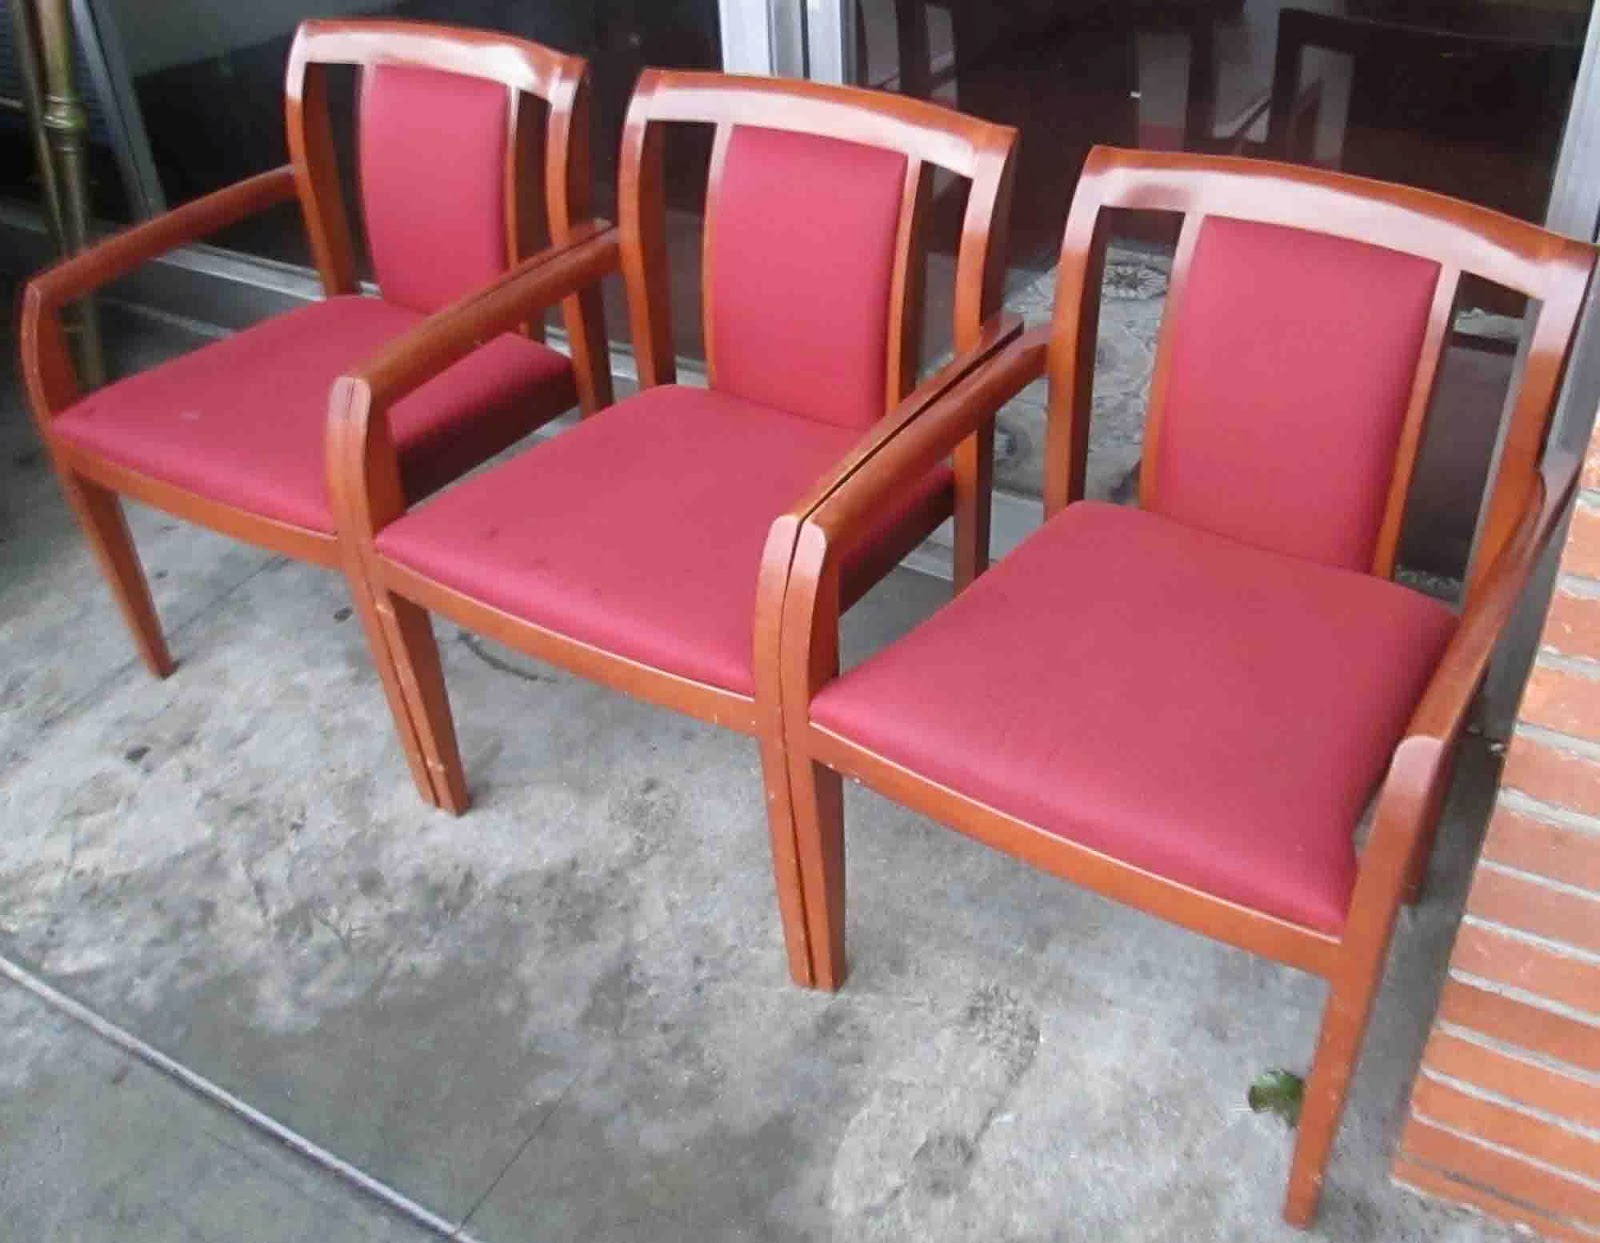 Waiting Room Chairs Uk Find Every Shop In The World Selling Steel Enlarger 01 At Pr Office